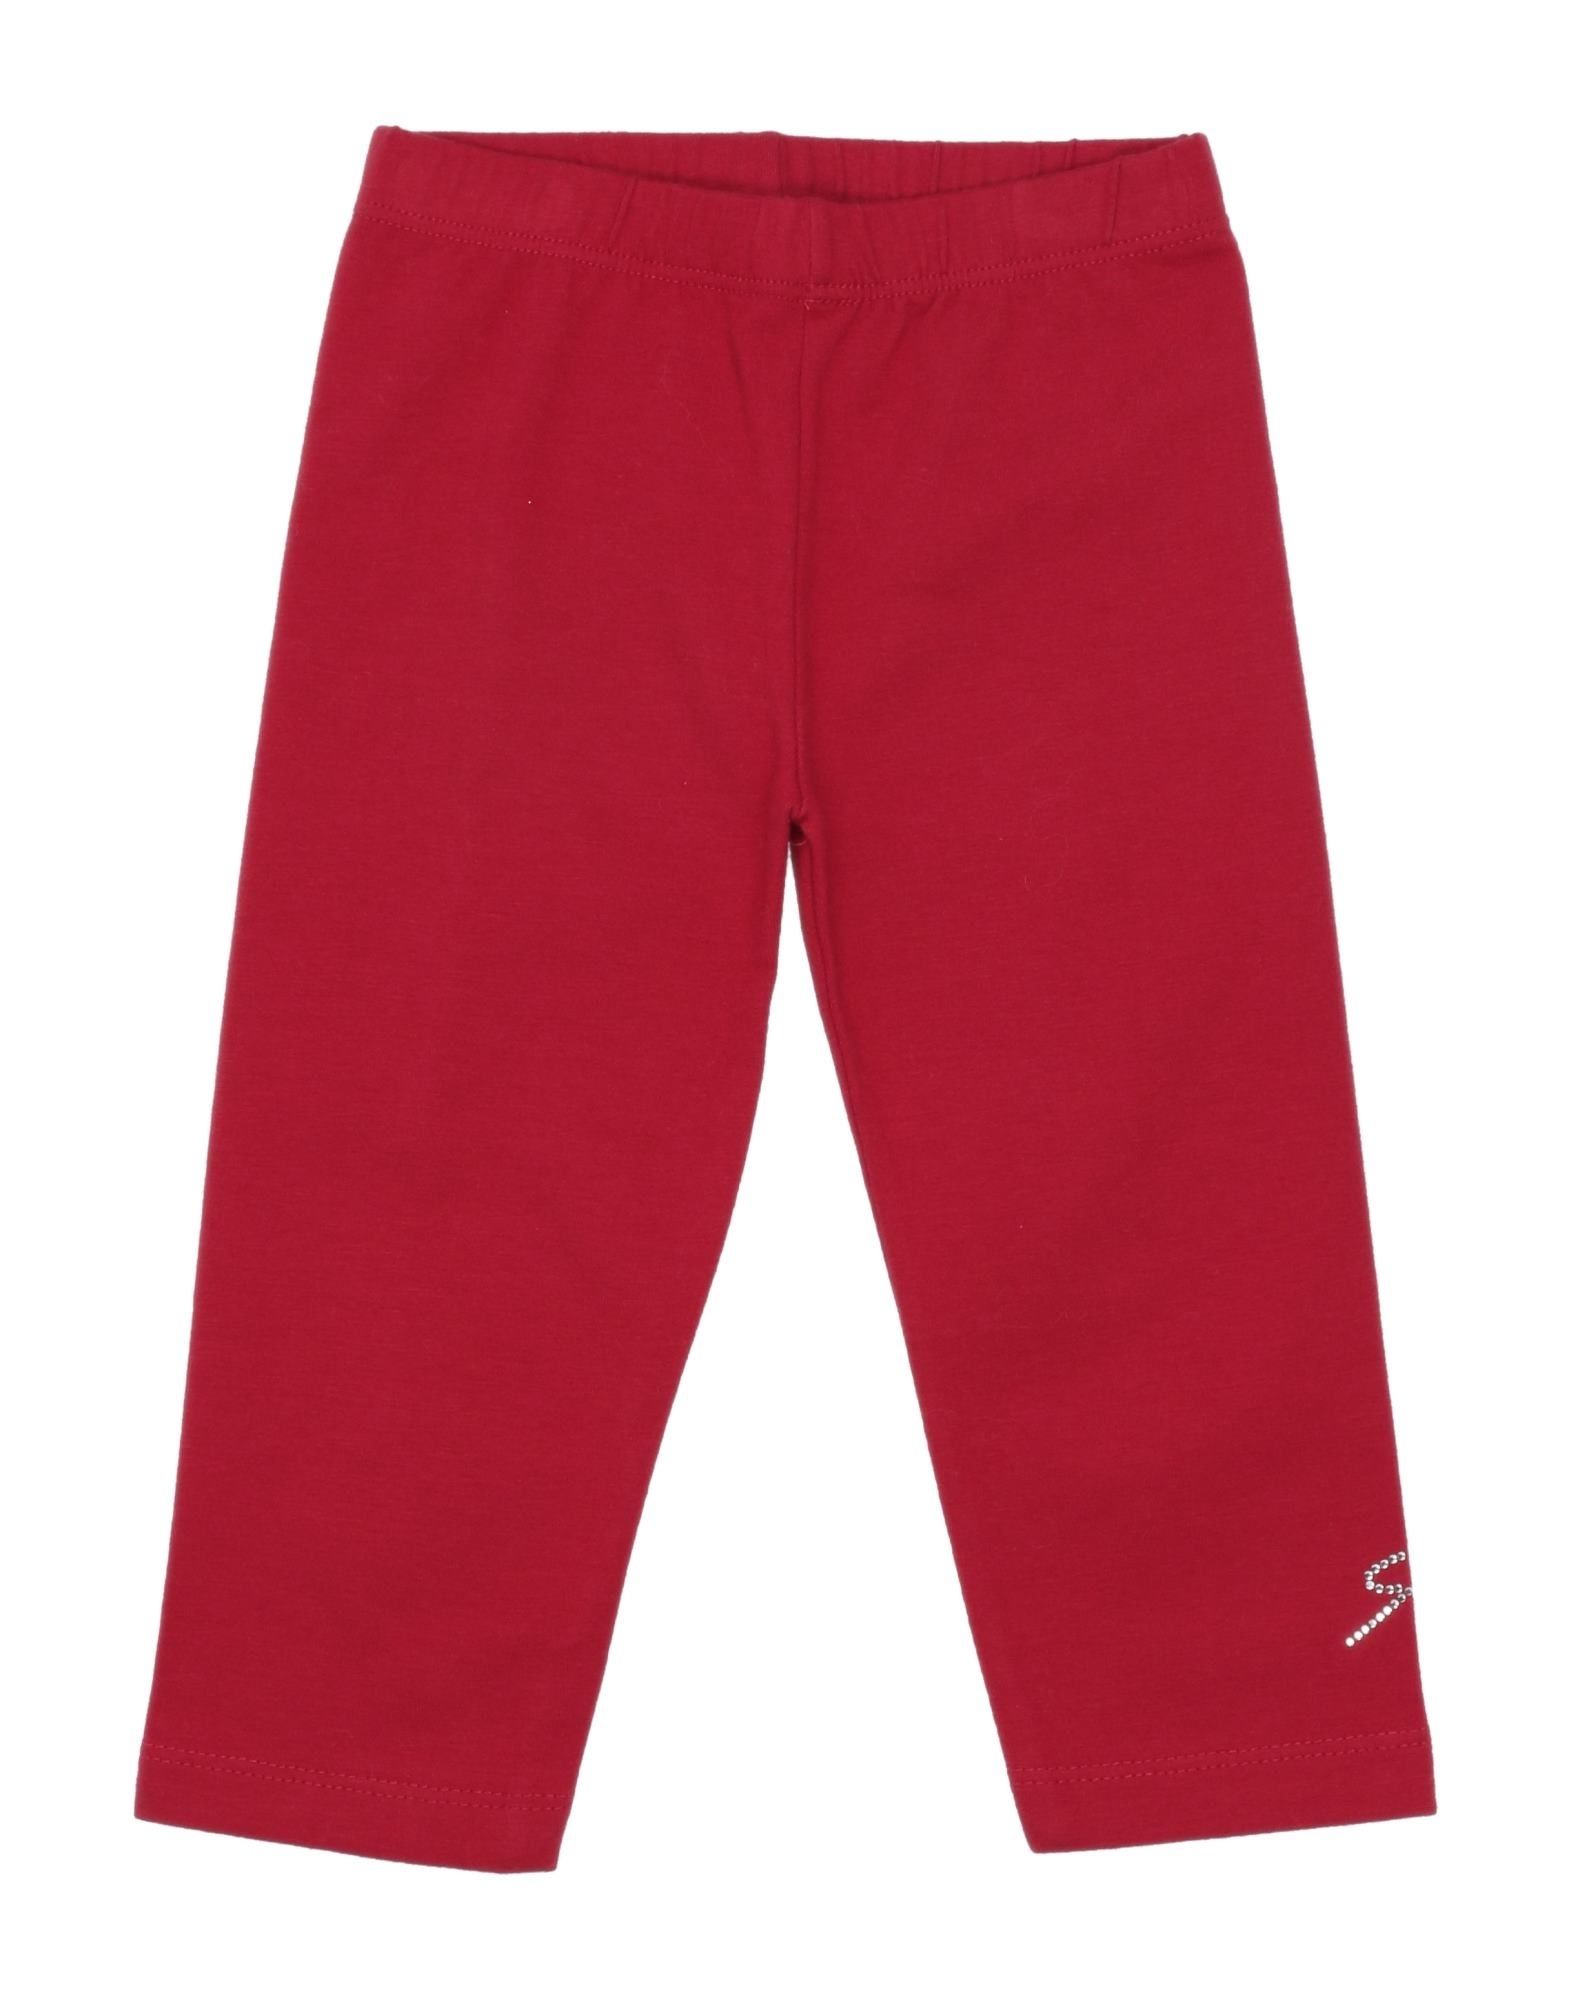 9.2 By Carlo Chionna Kids' Casual Pants In Red